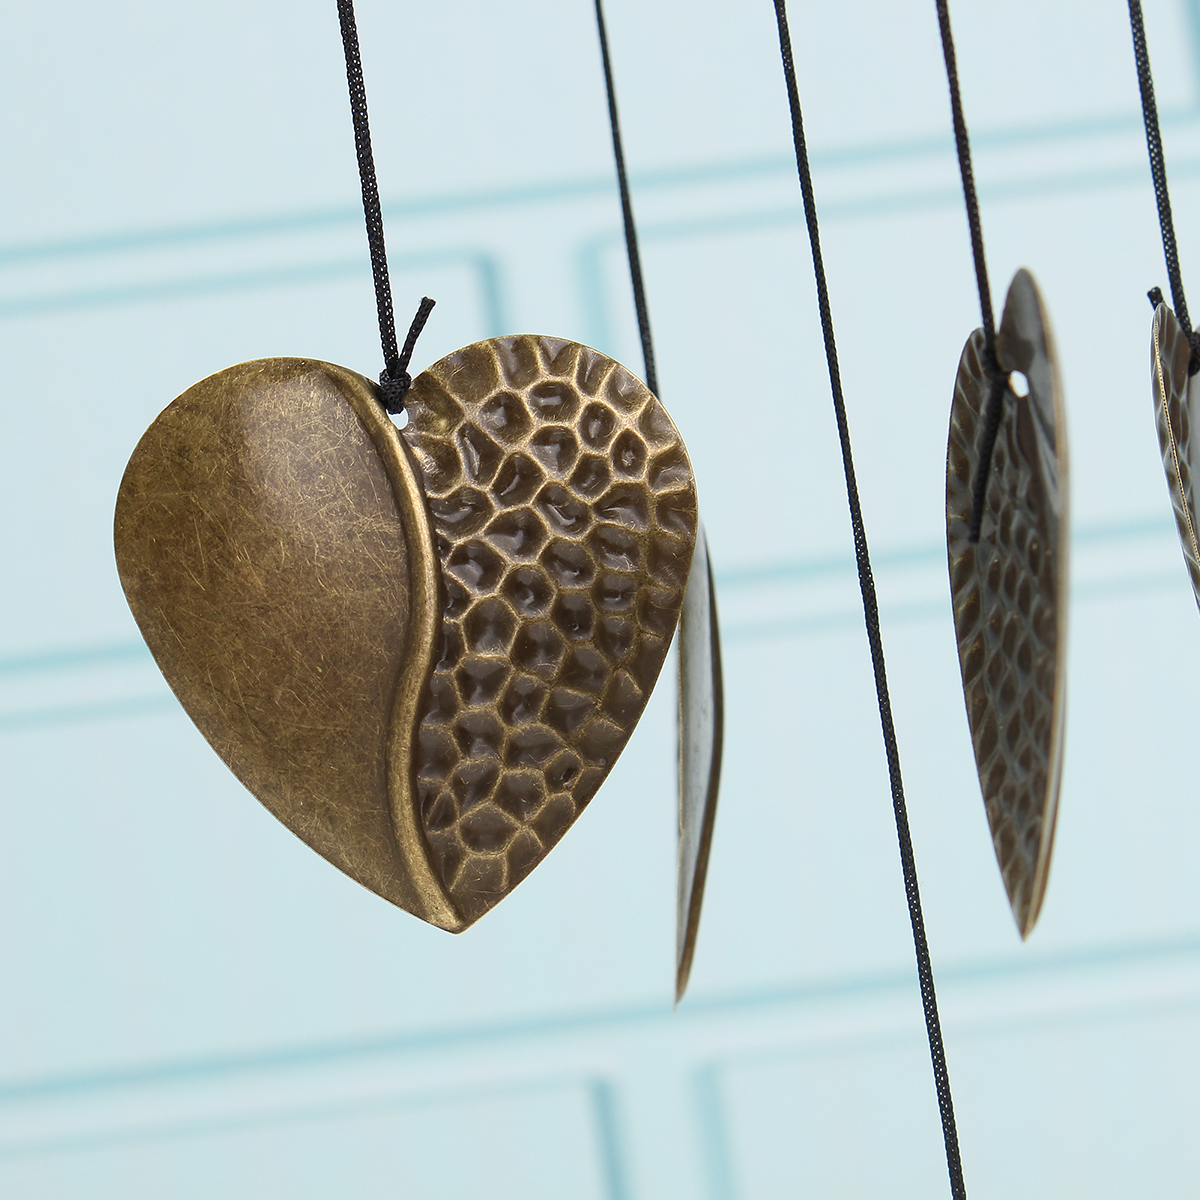 Heart decor wind chimes wind bell metal 8 tubes hanging for Hanging garden ornaments